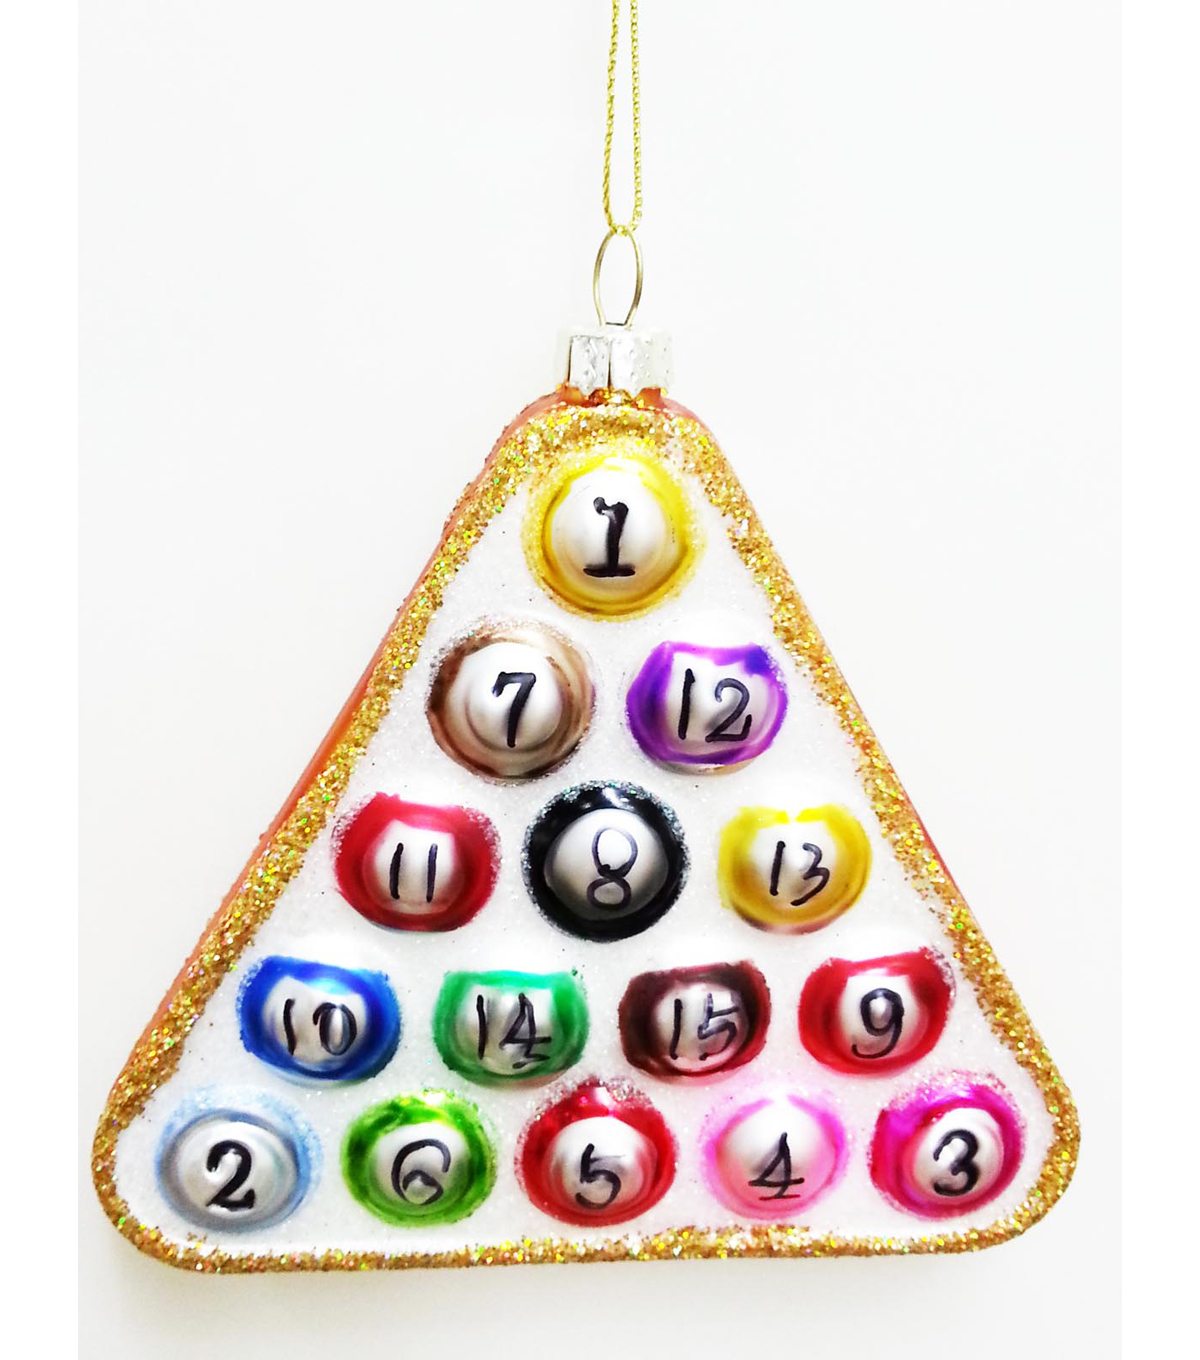 Maker\u0027s Holiday Pool Game Ornament